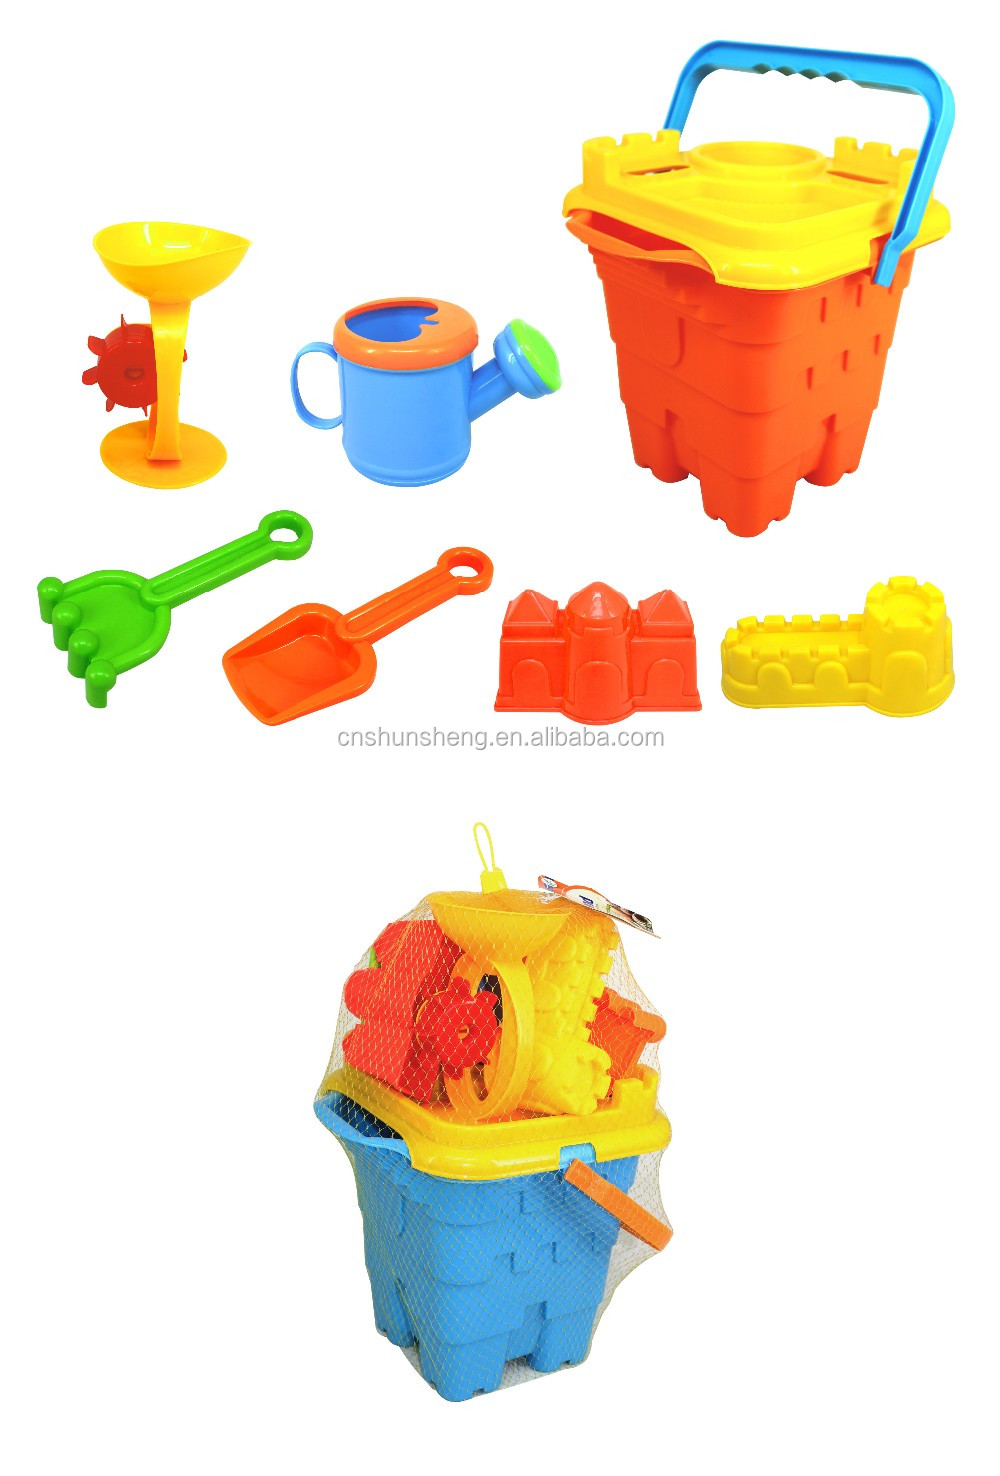 2017 summer beach toys beach sand molds for kids